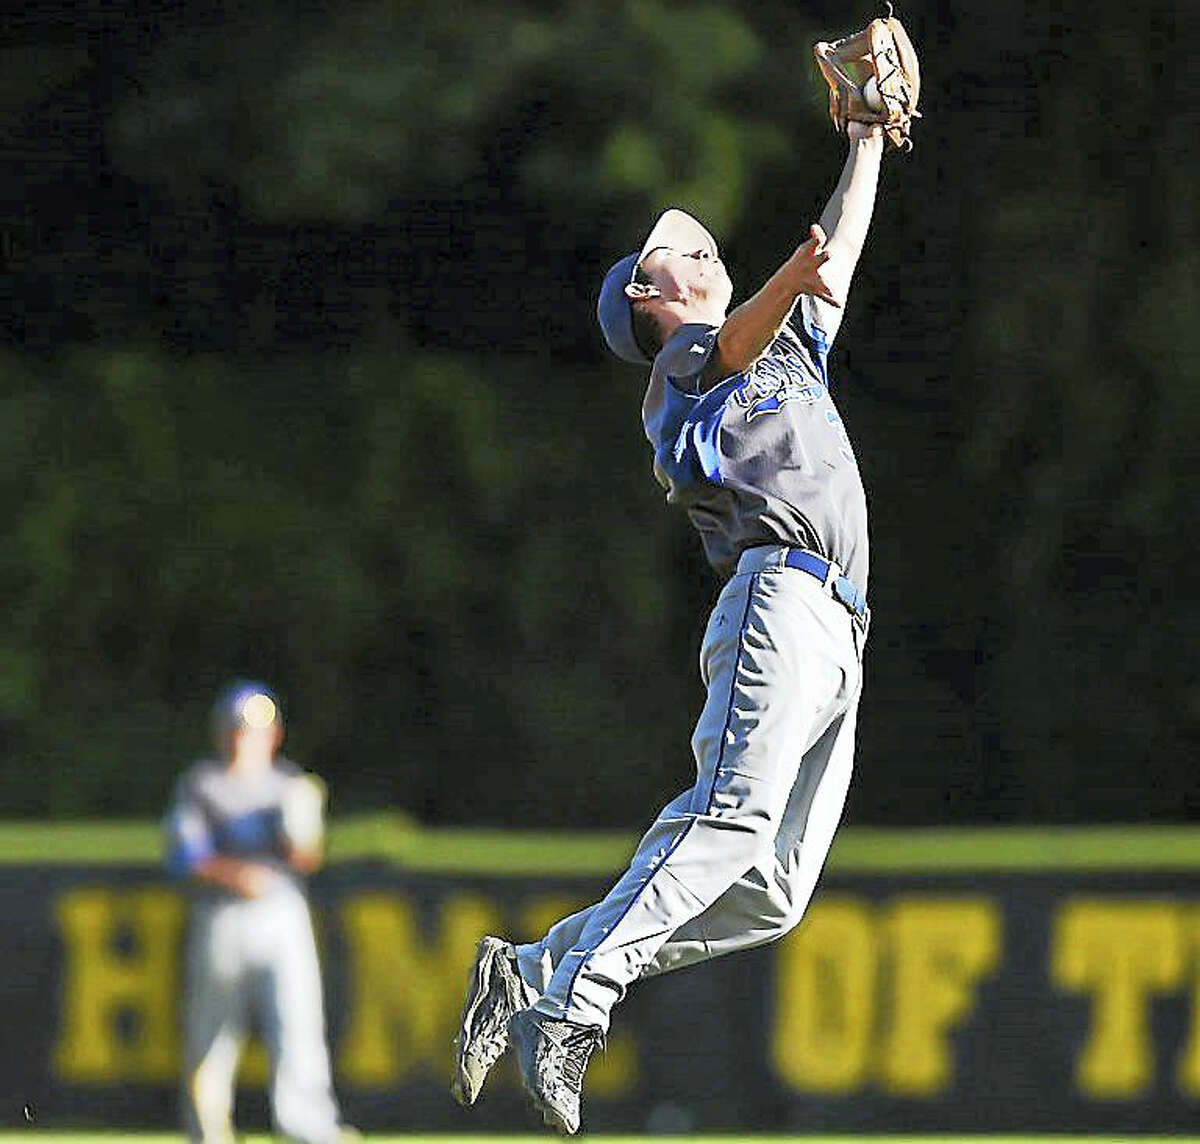 East Haddam second baseman Zach Johnson makes a spectacular catch against Madison in a 6-2 win for Post 156, Wednesday, June 29, 2016, at Polson in Madison.